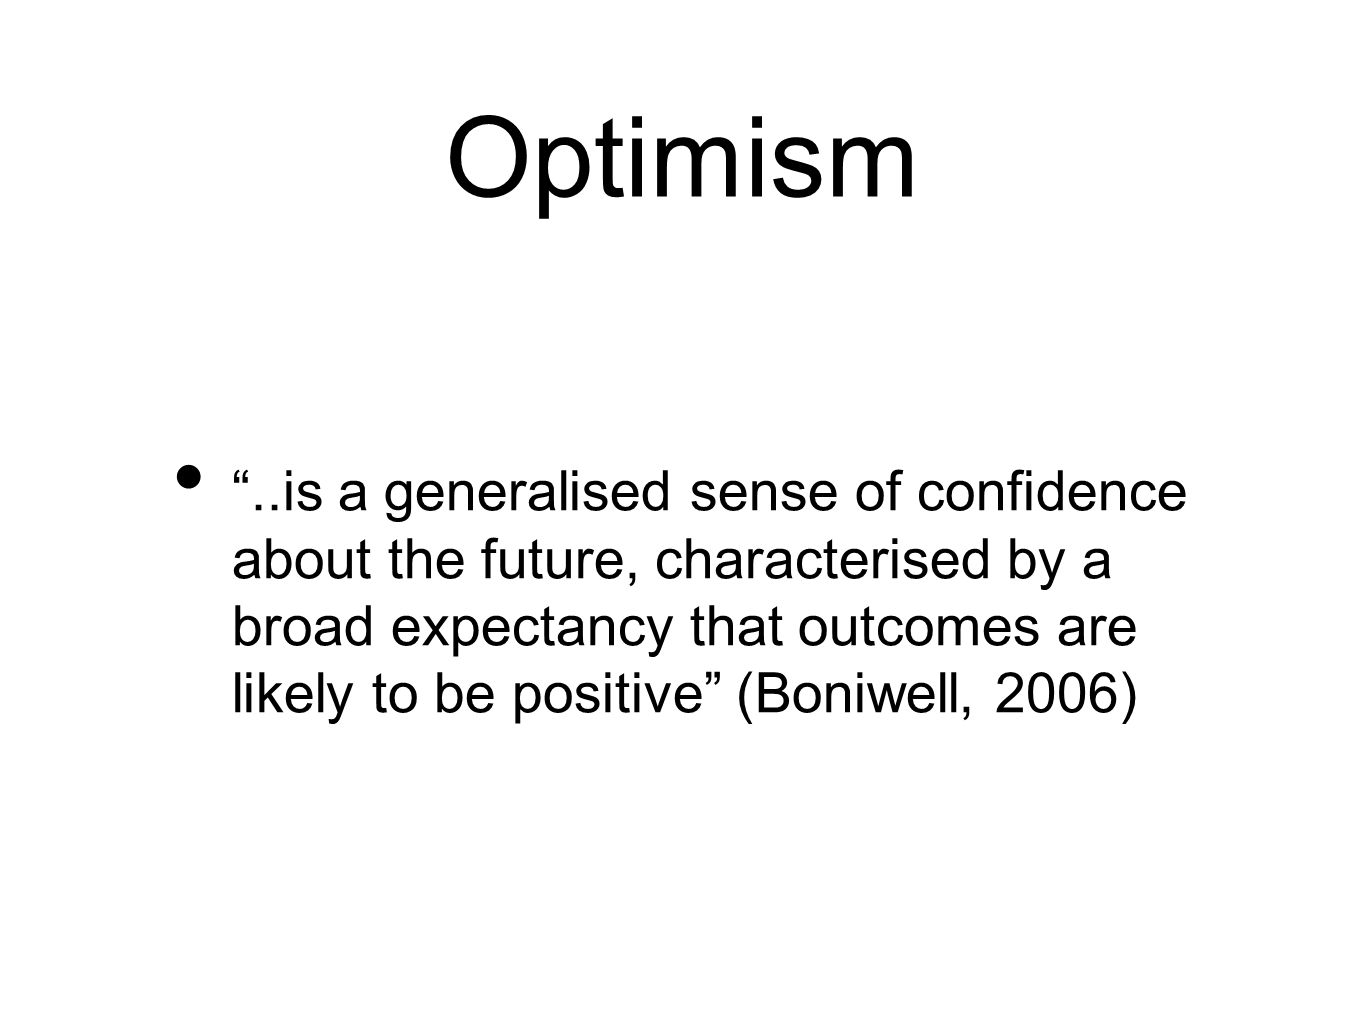 Optimism ..is a generalised sense of confidence about the future, characterised by a broad expectancy that outcomes are likely to be positive (Boniwell, 2006)